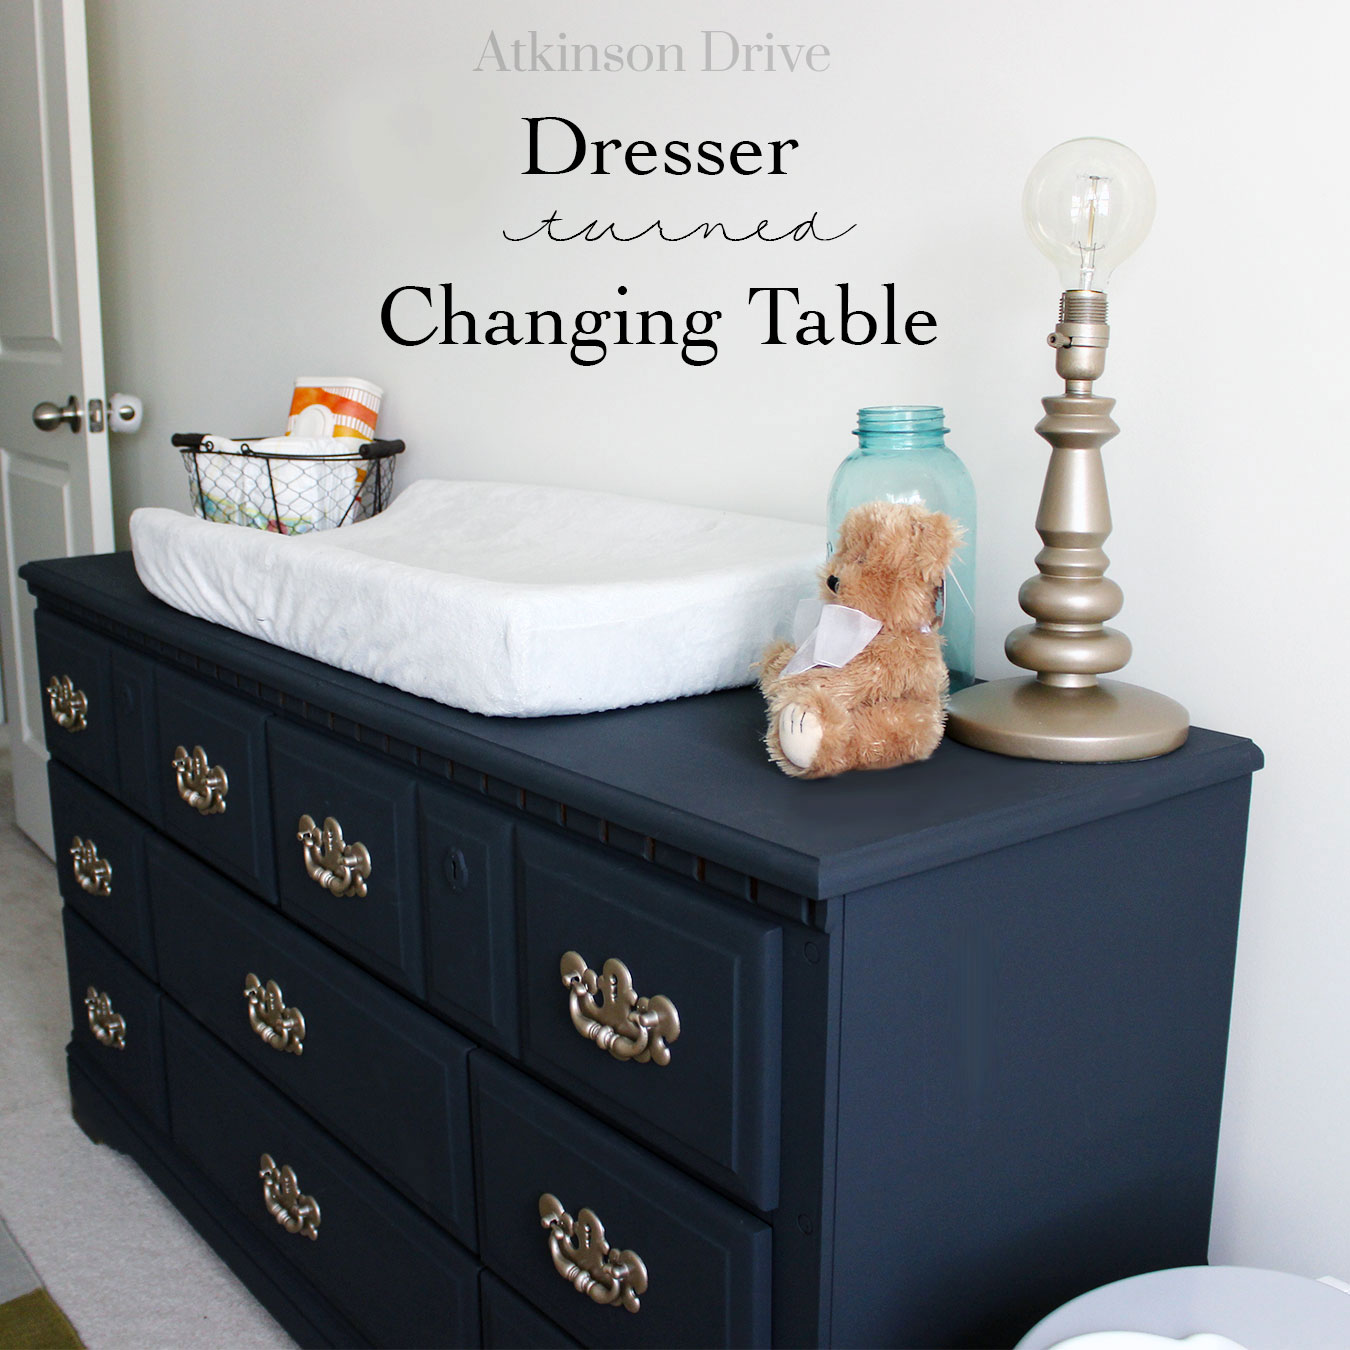 Dresser to Changing Table: Upcycle